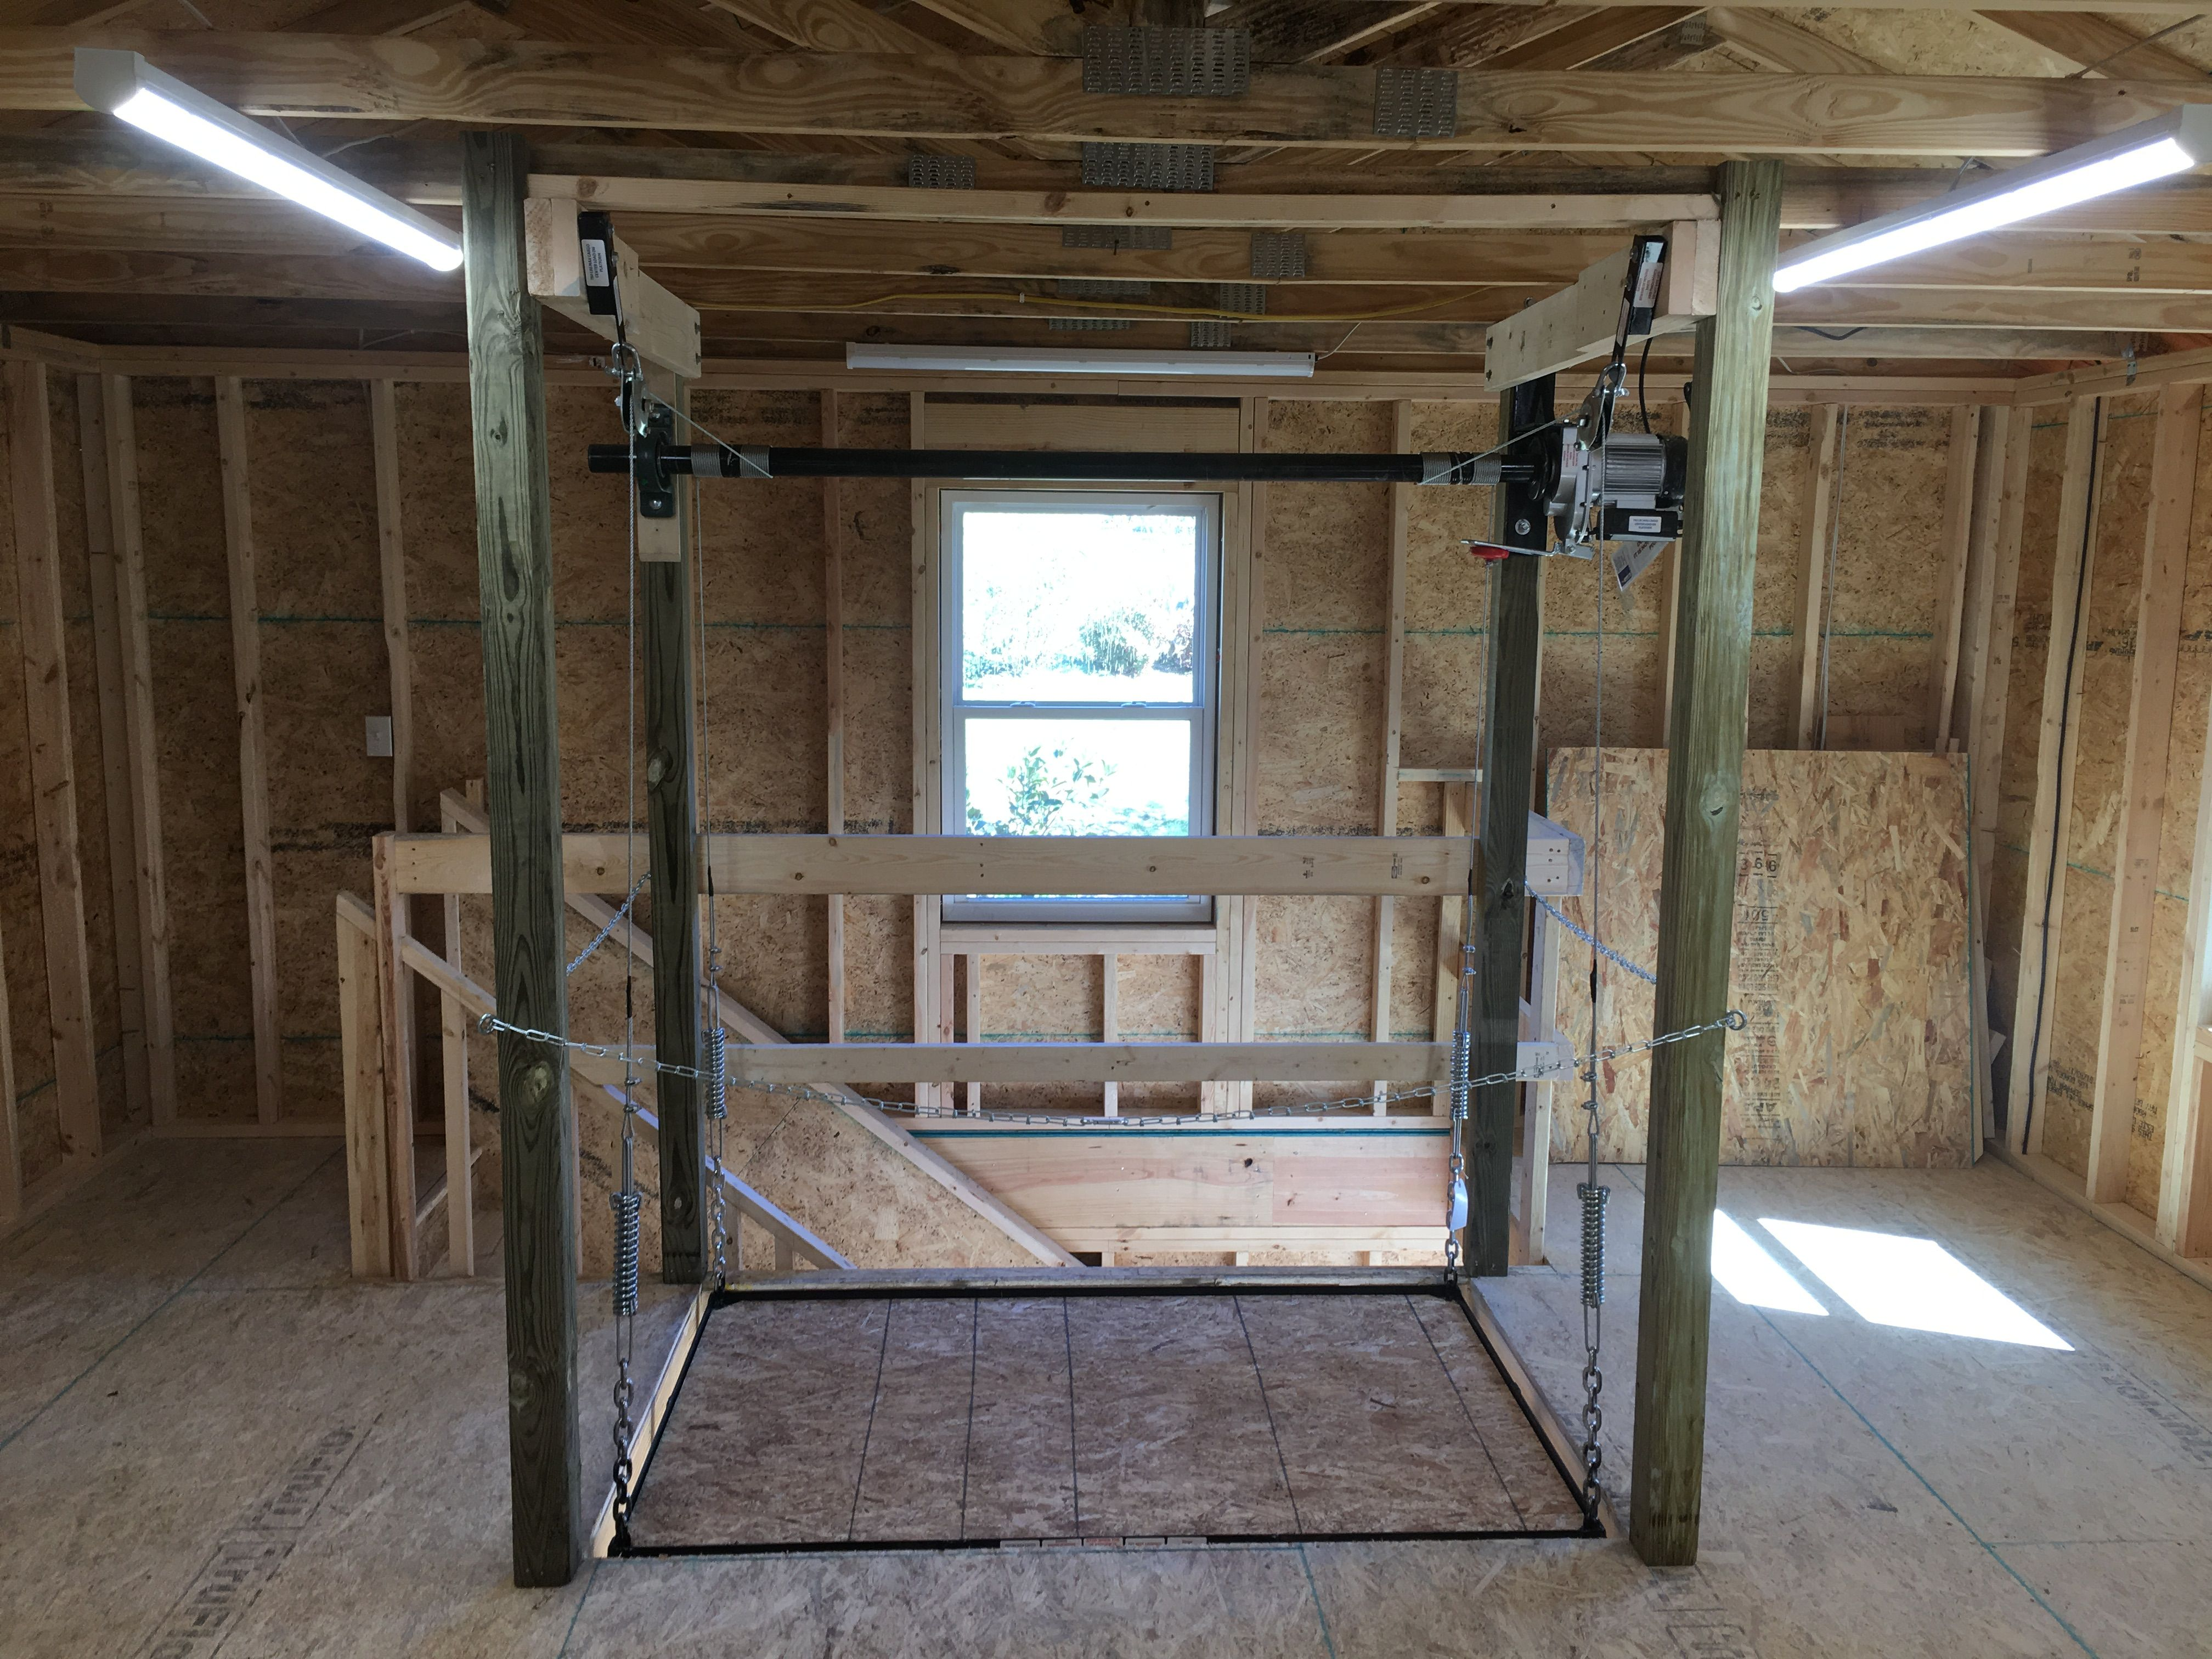 Attic Lift Diy The Attic Lift Is A Garage Lift System That Is Motorized Designed